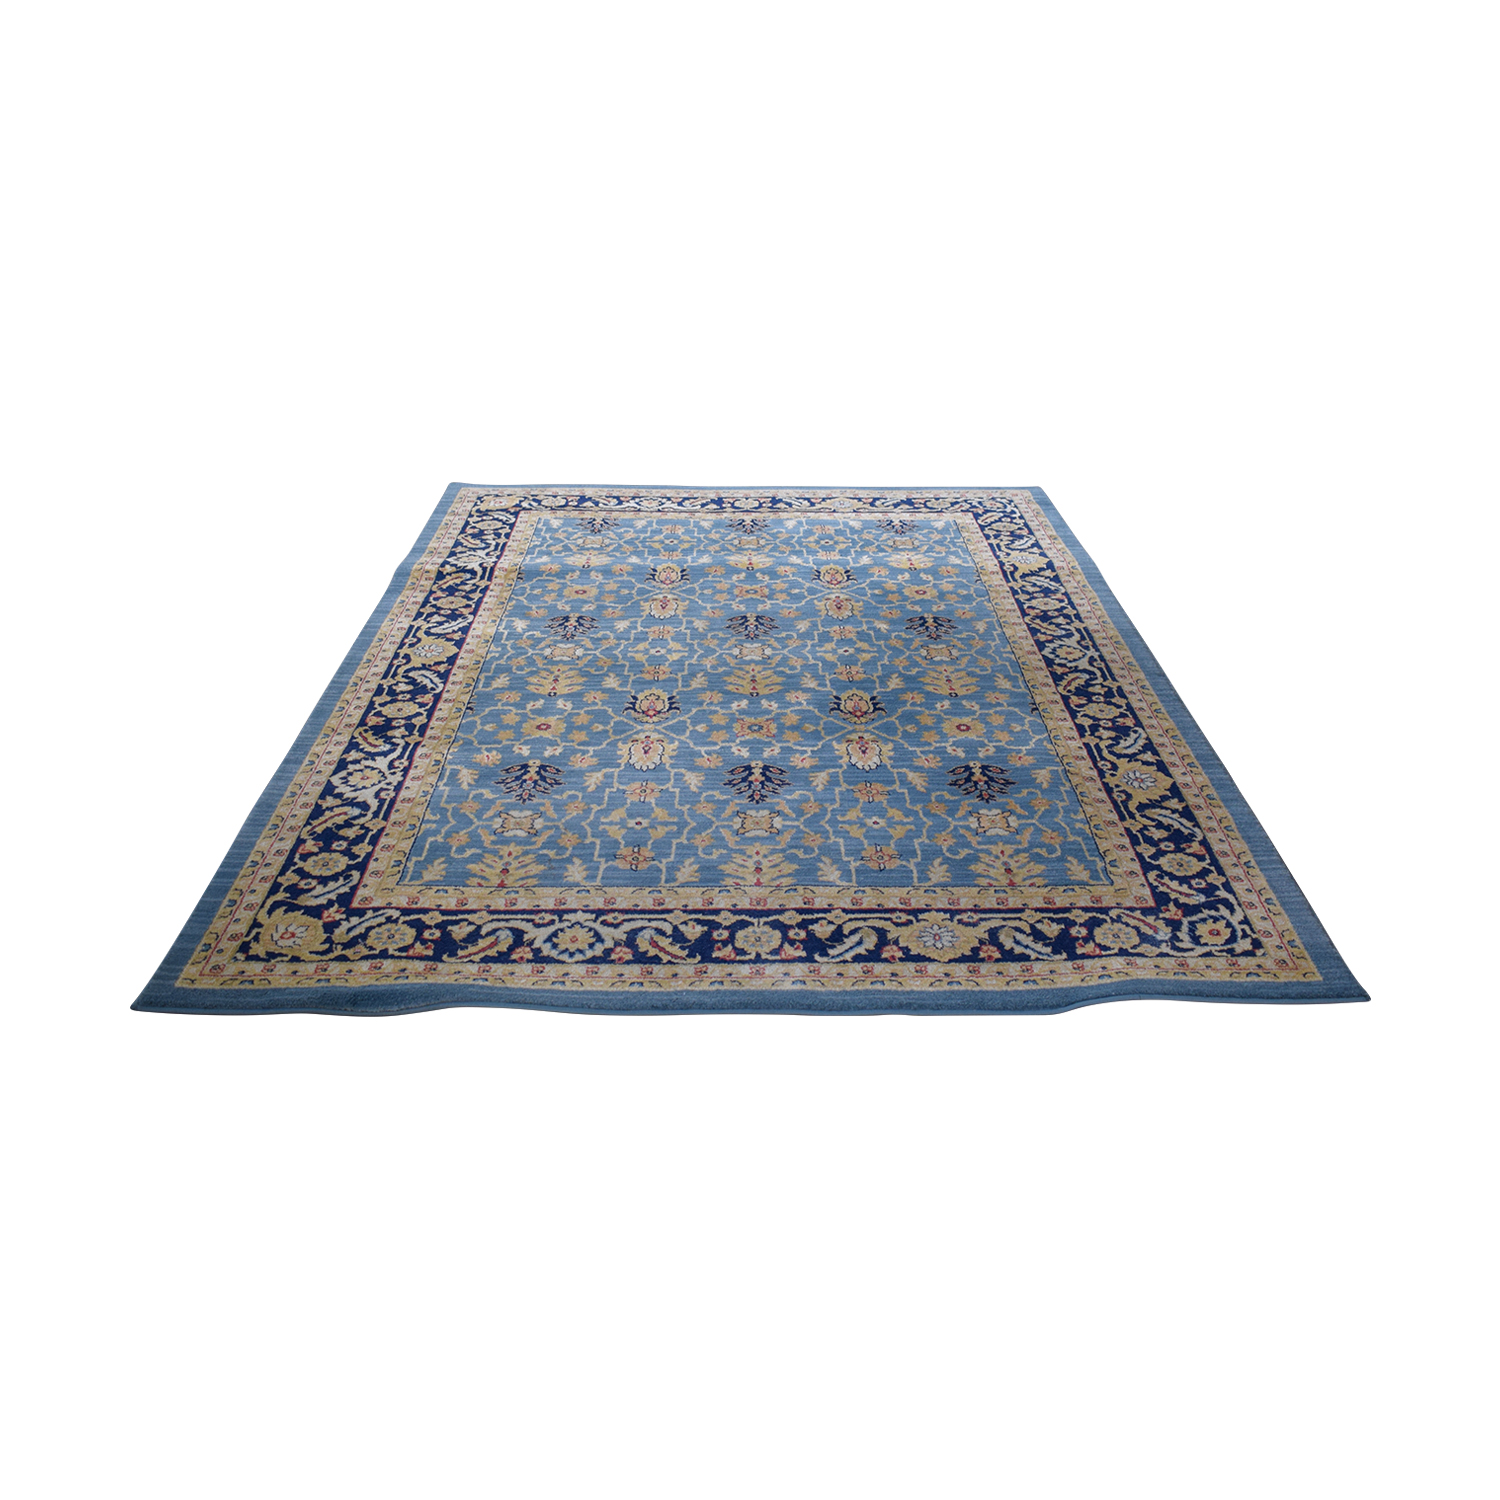 Safavieh Light Blue and Navy Rug Safavieh